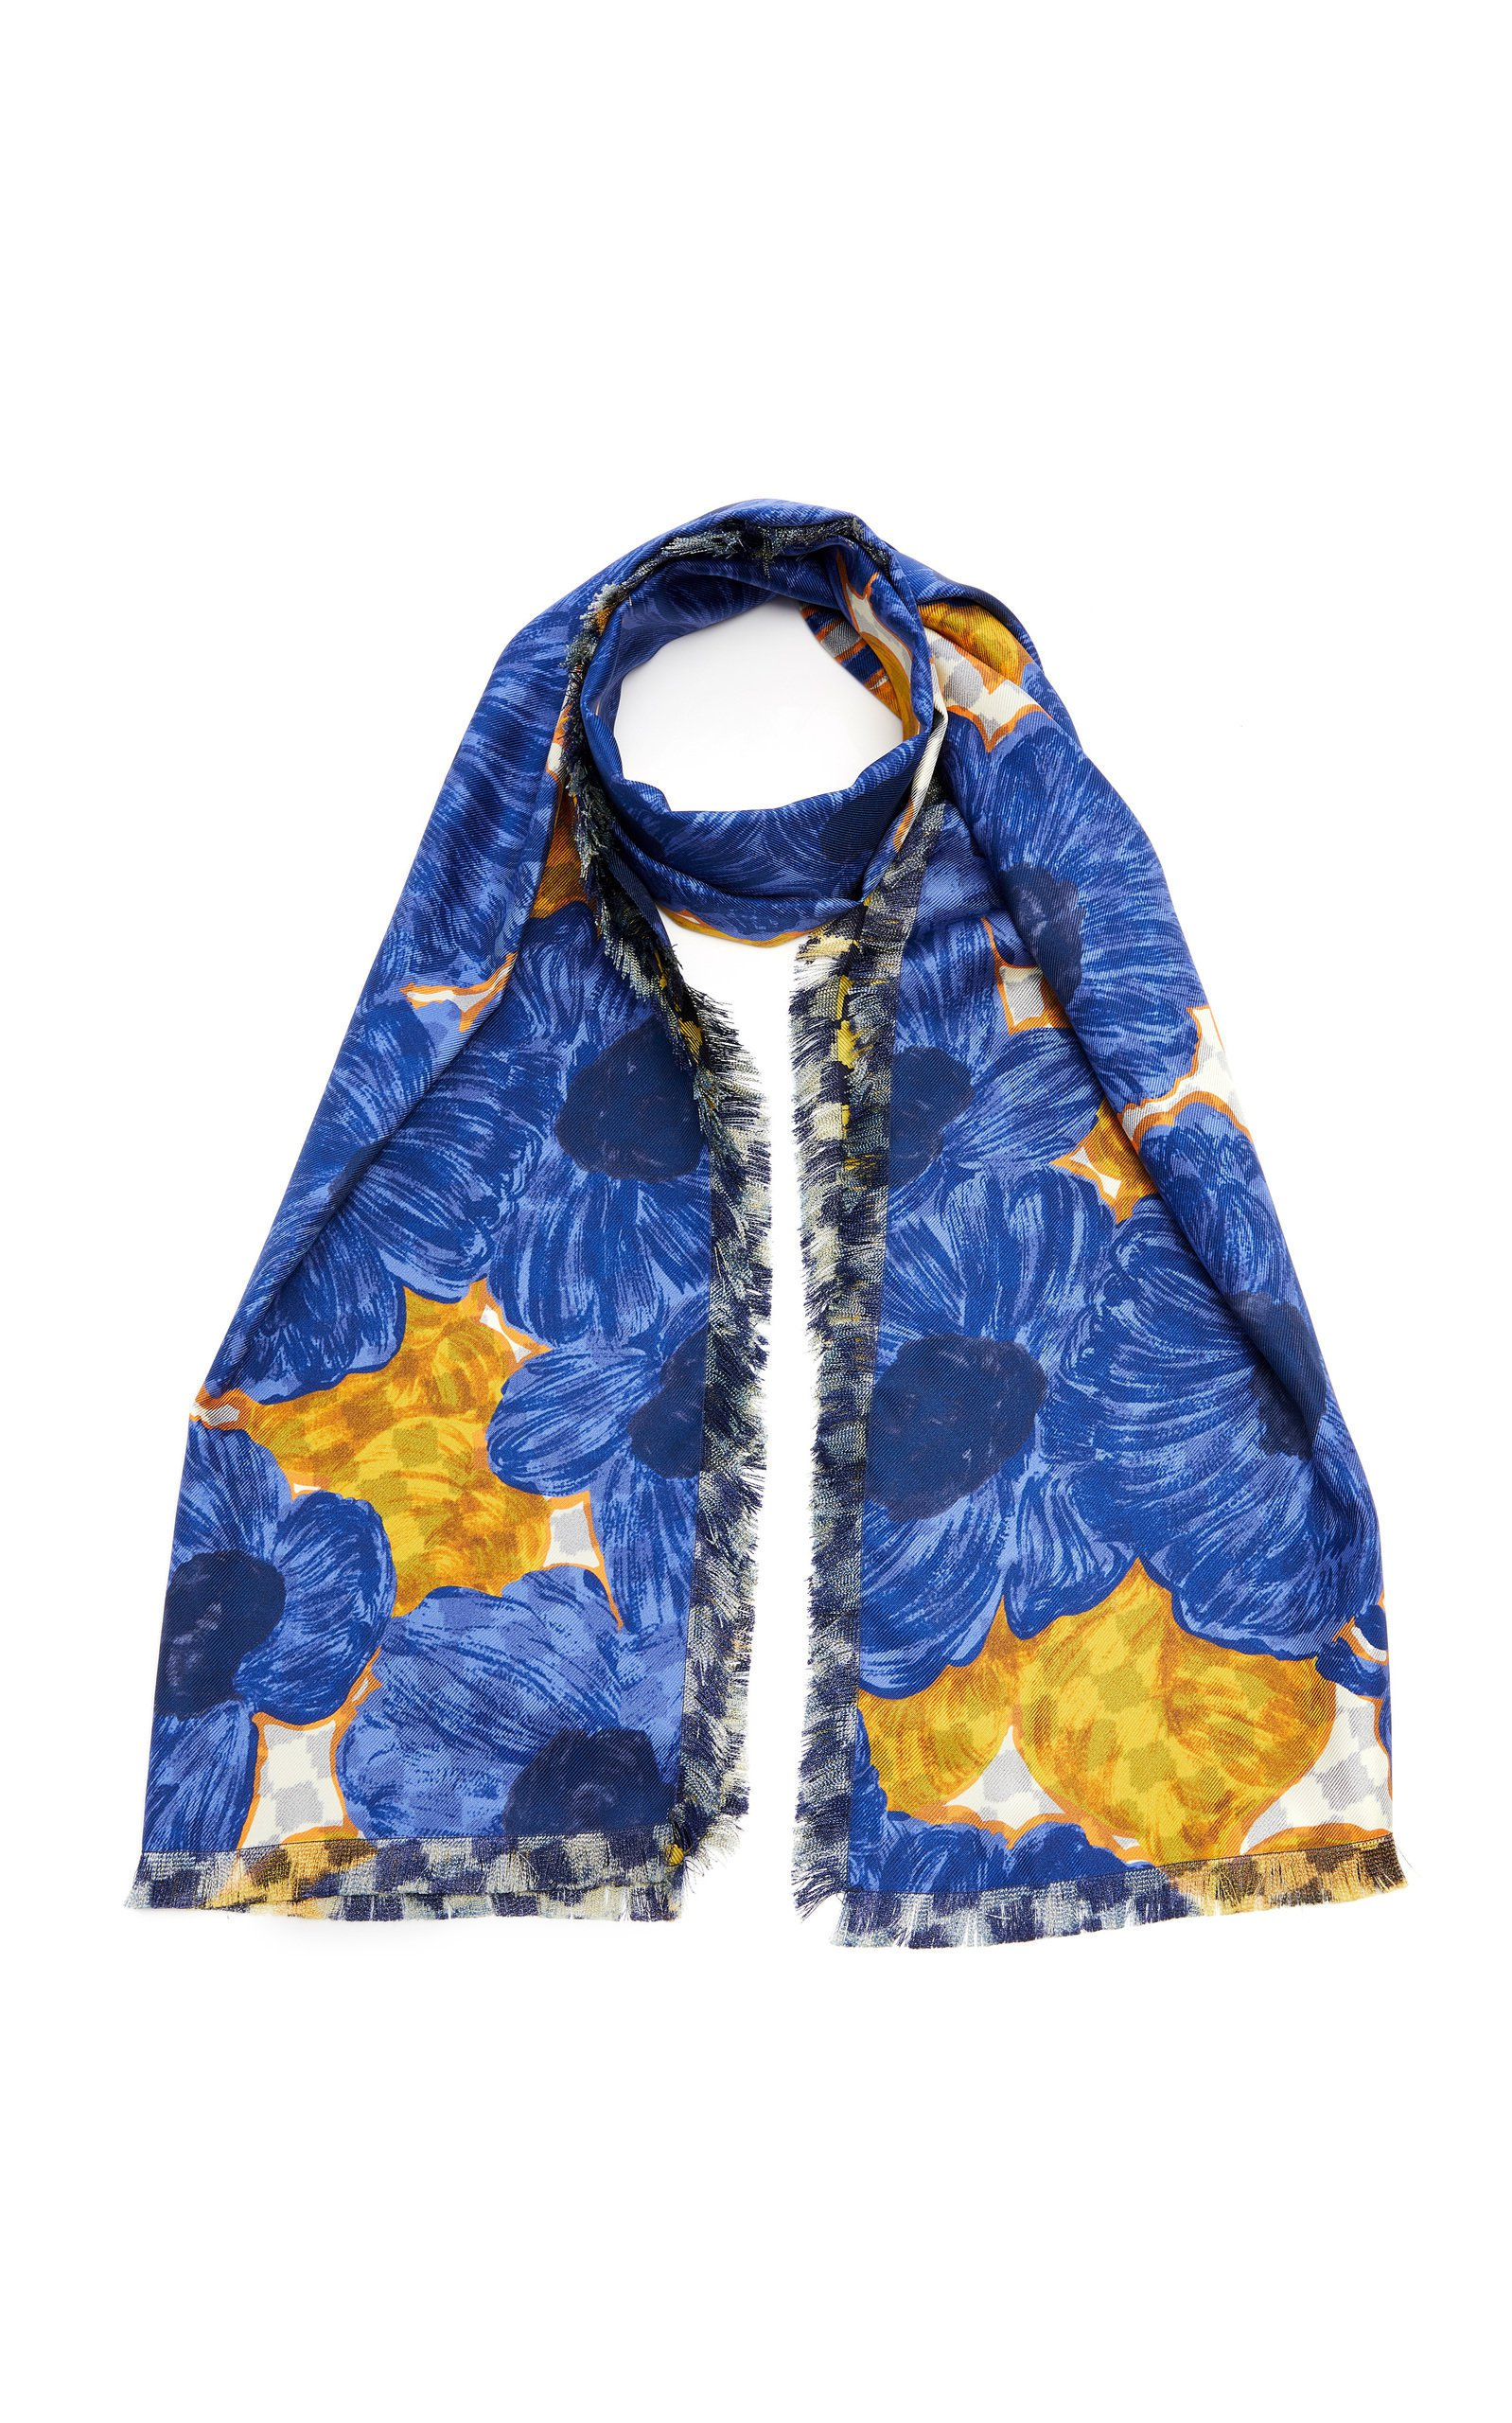 Etro Checkered Floral Silk Scarf